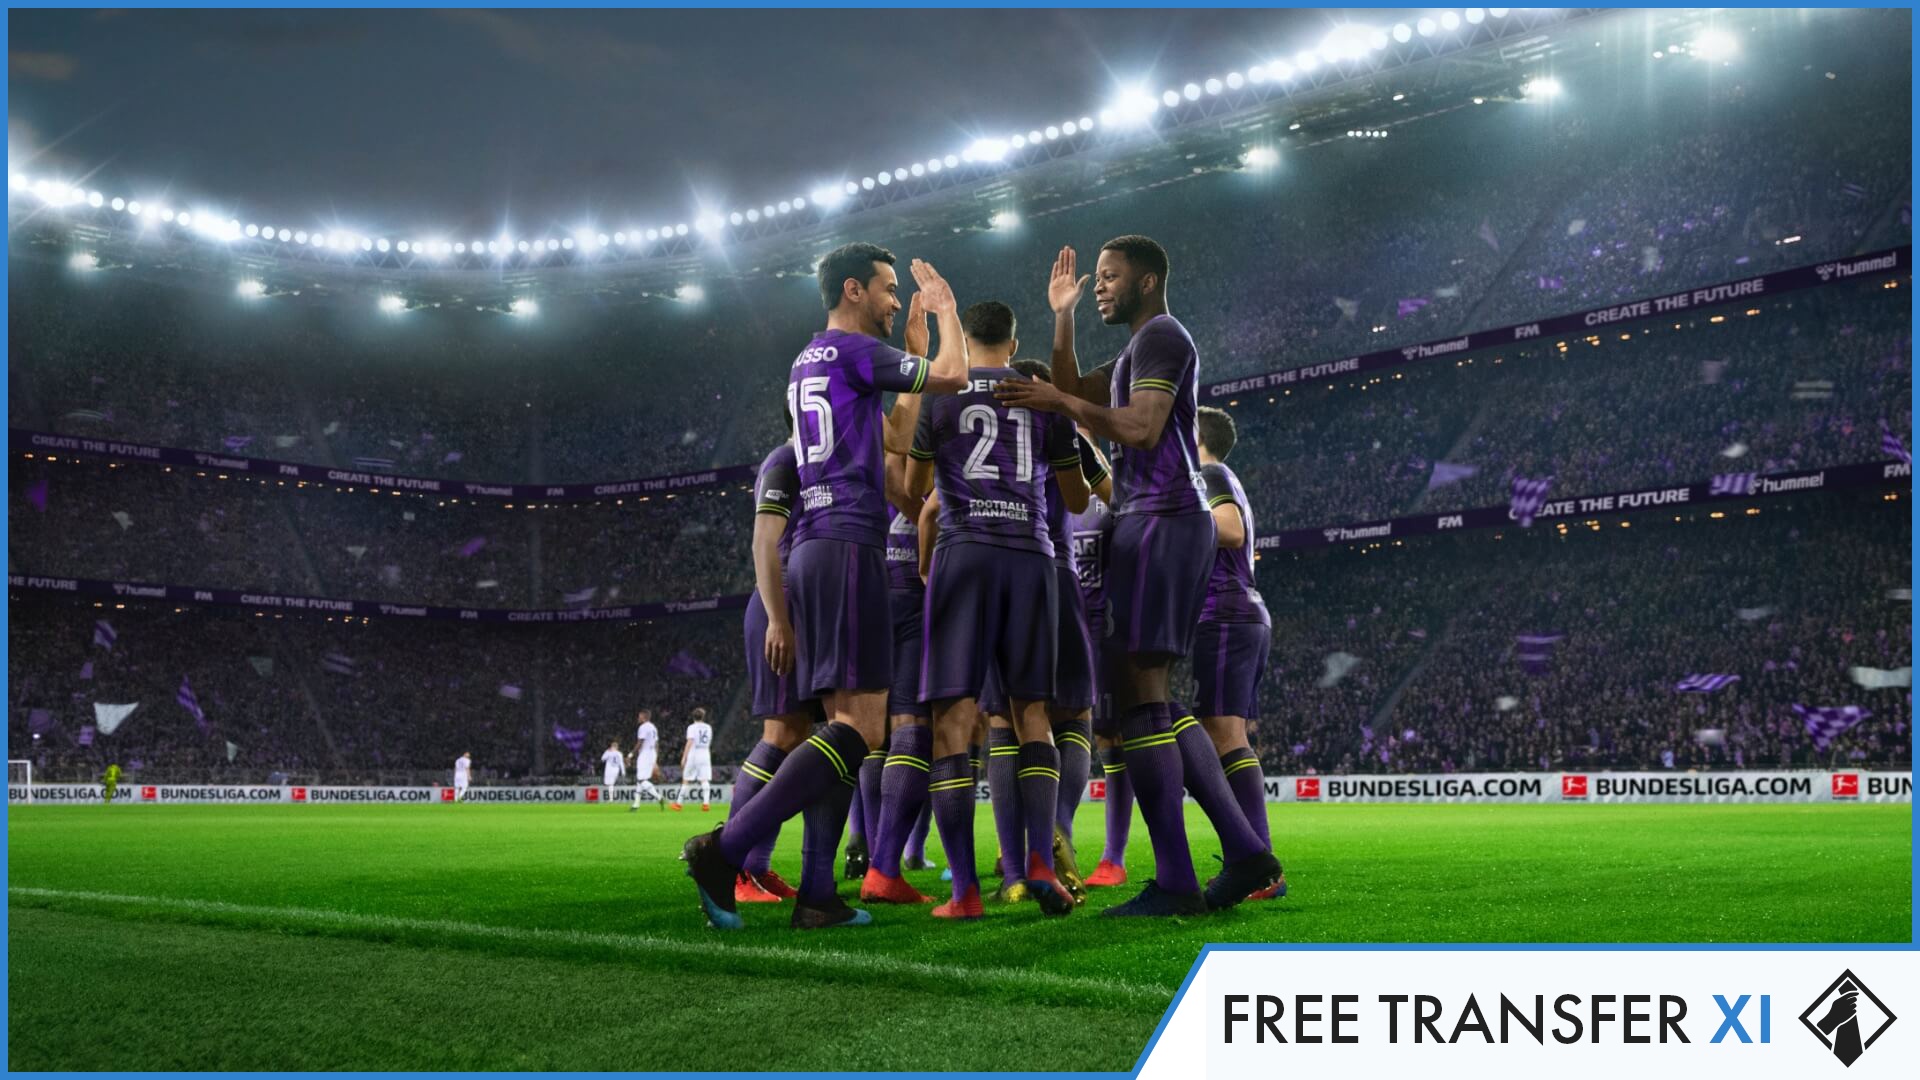 """Football Manager 2021 - Free Transfer XI"" feature image"